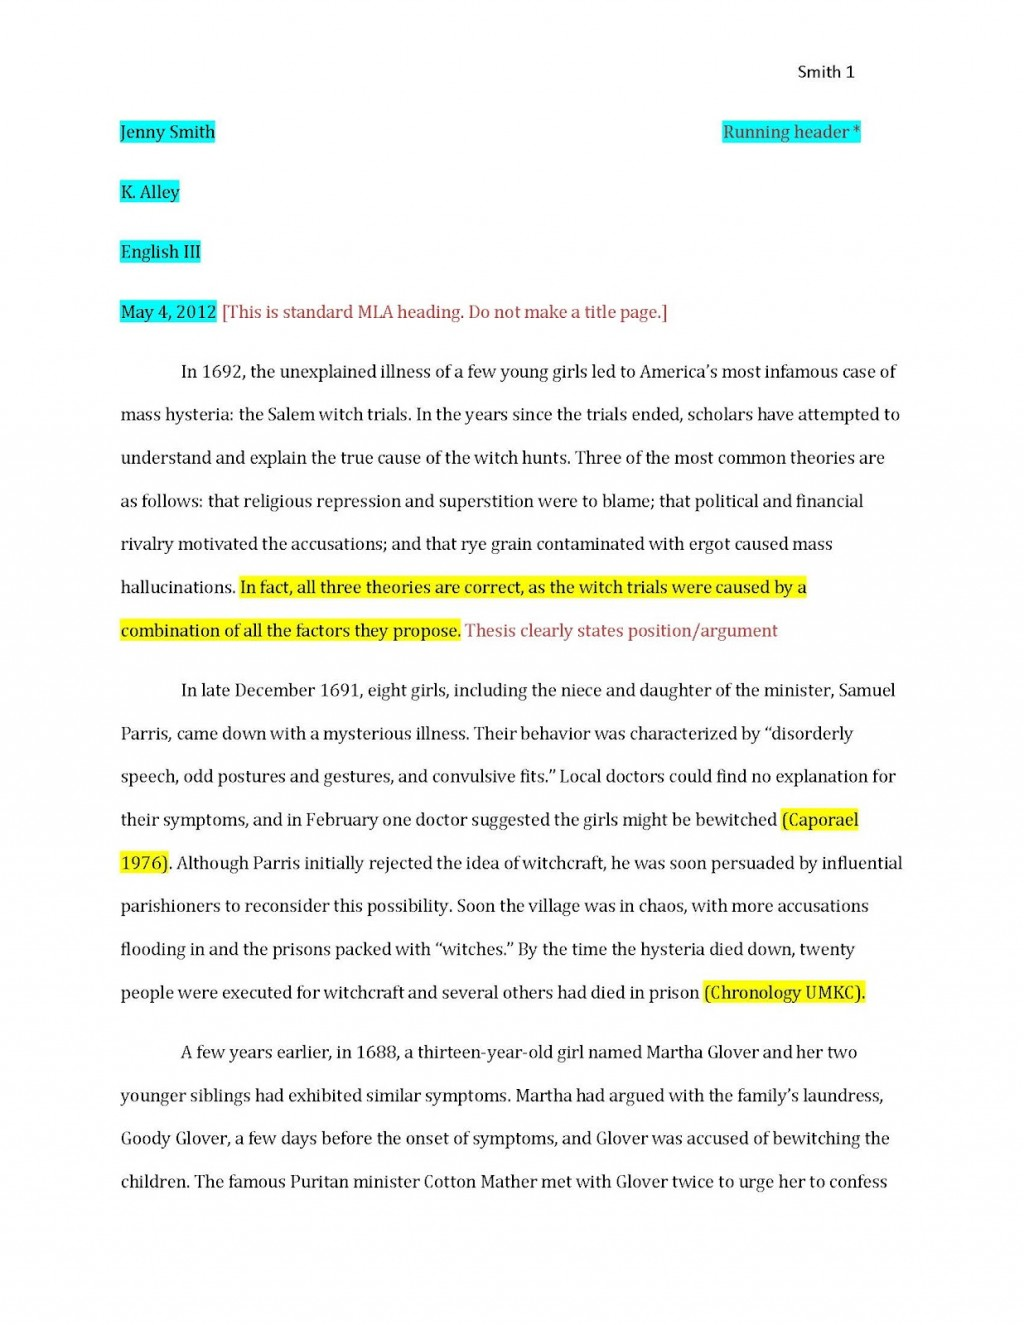 012 How To Cite Essaypaper Page 1 Wonderful A Essay Critical In Book Mla Your Own Format An 8th Edition Large